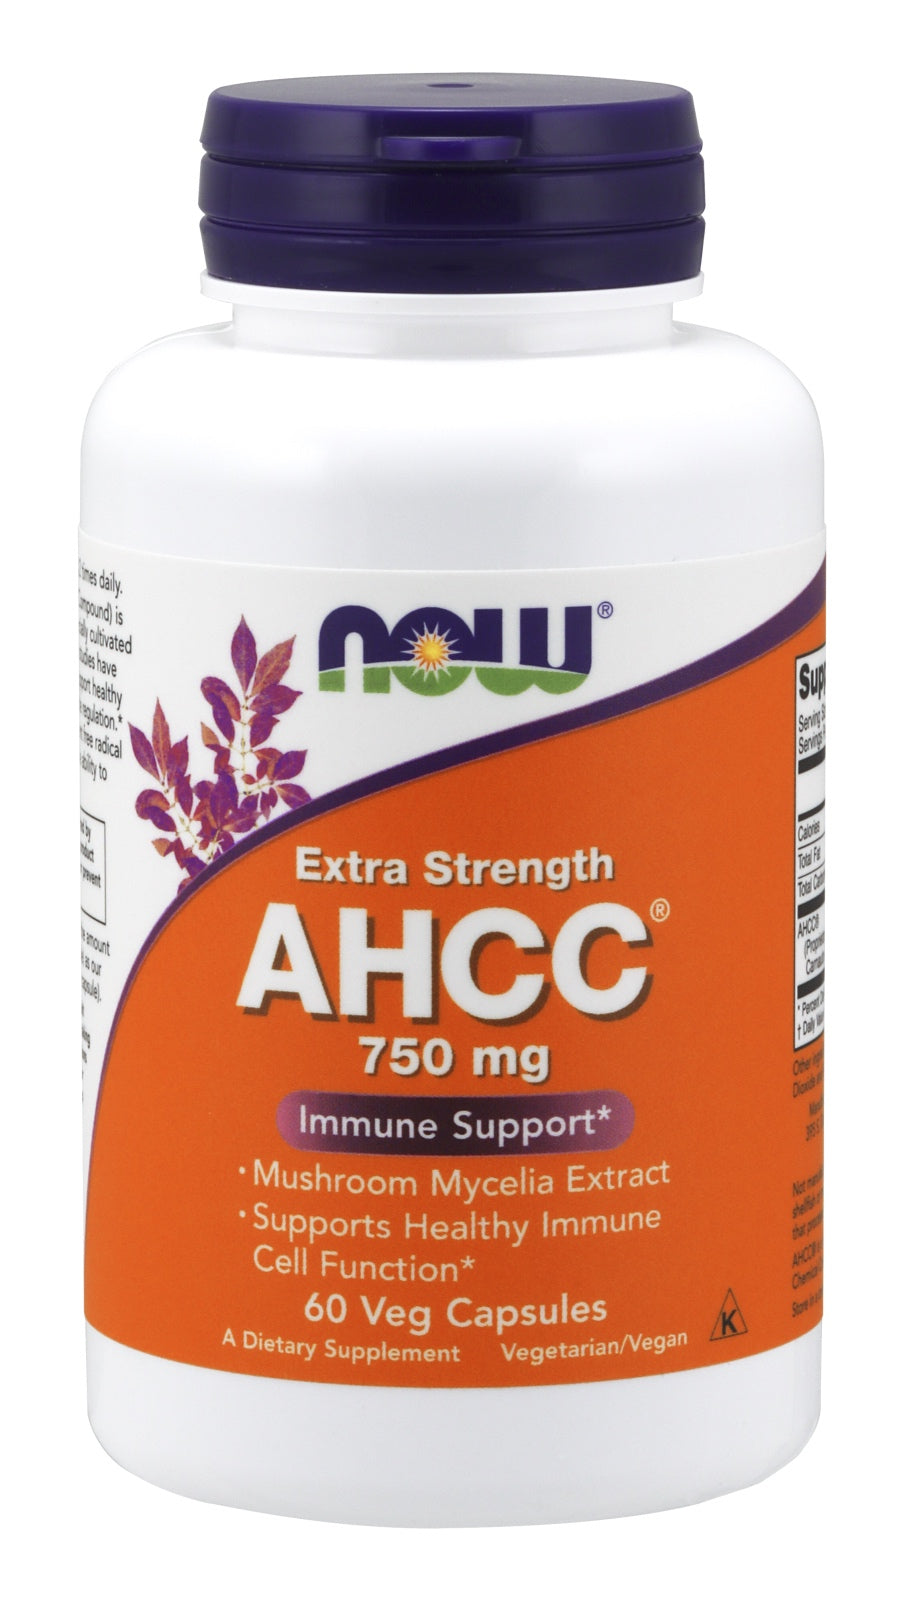 AHCC®, Extra Strength 750 mg, 60 Veg Capsules